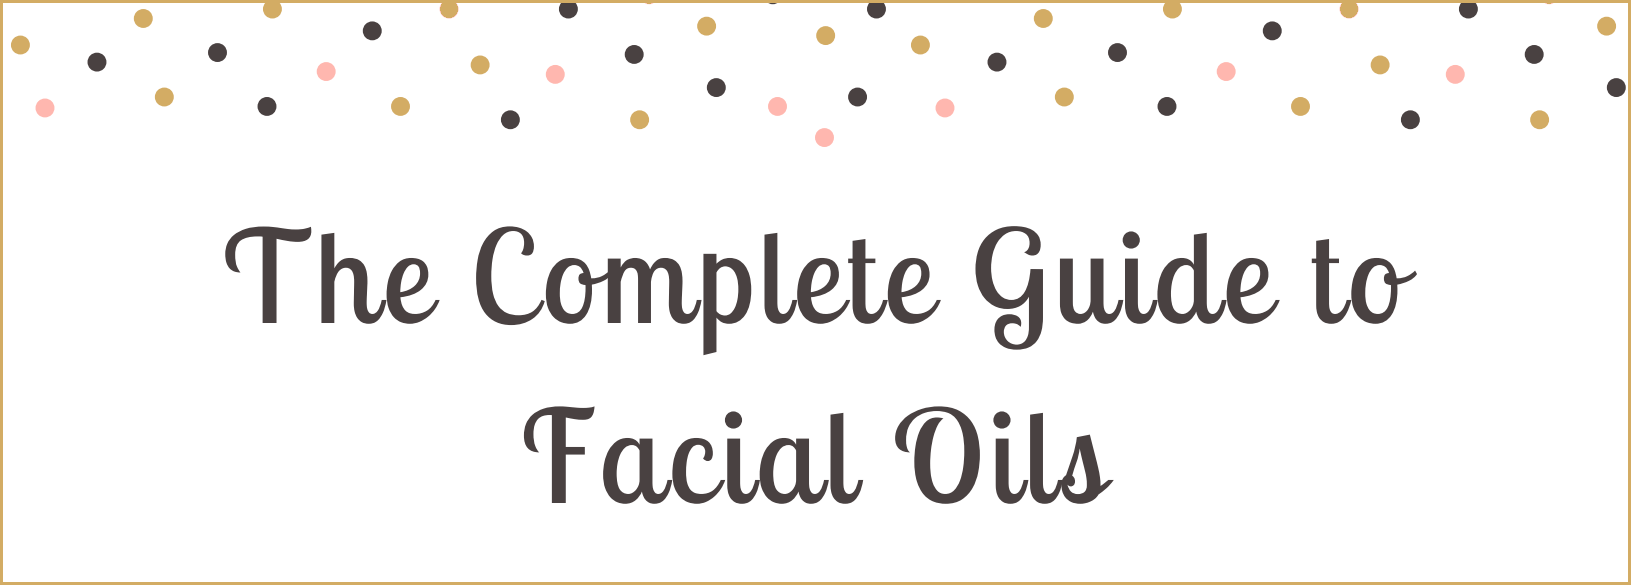 the complete guide to facial oils banner_gold